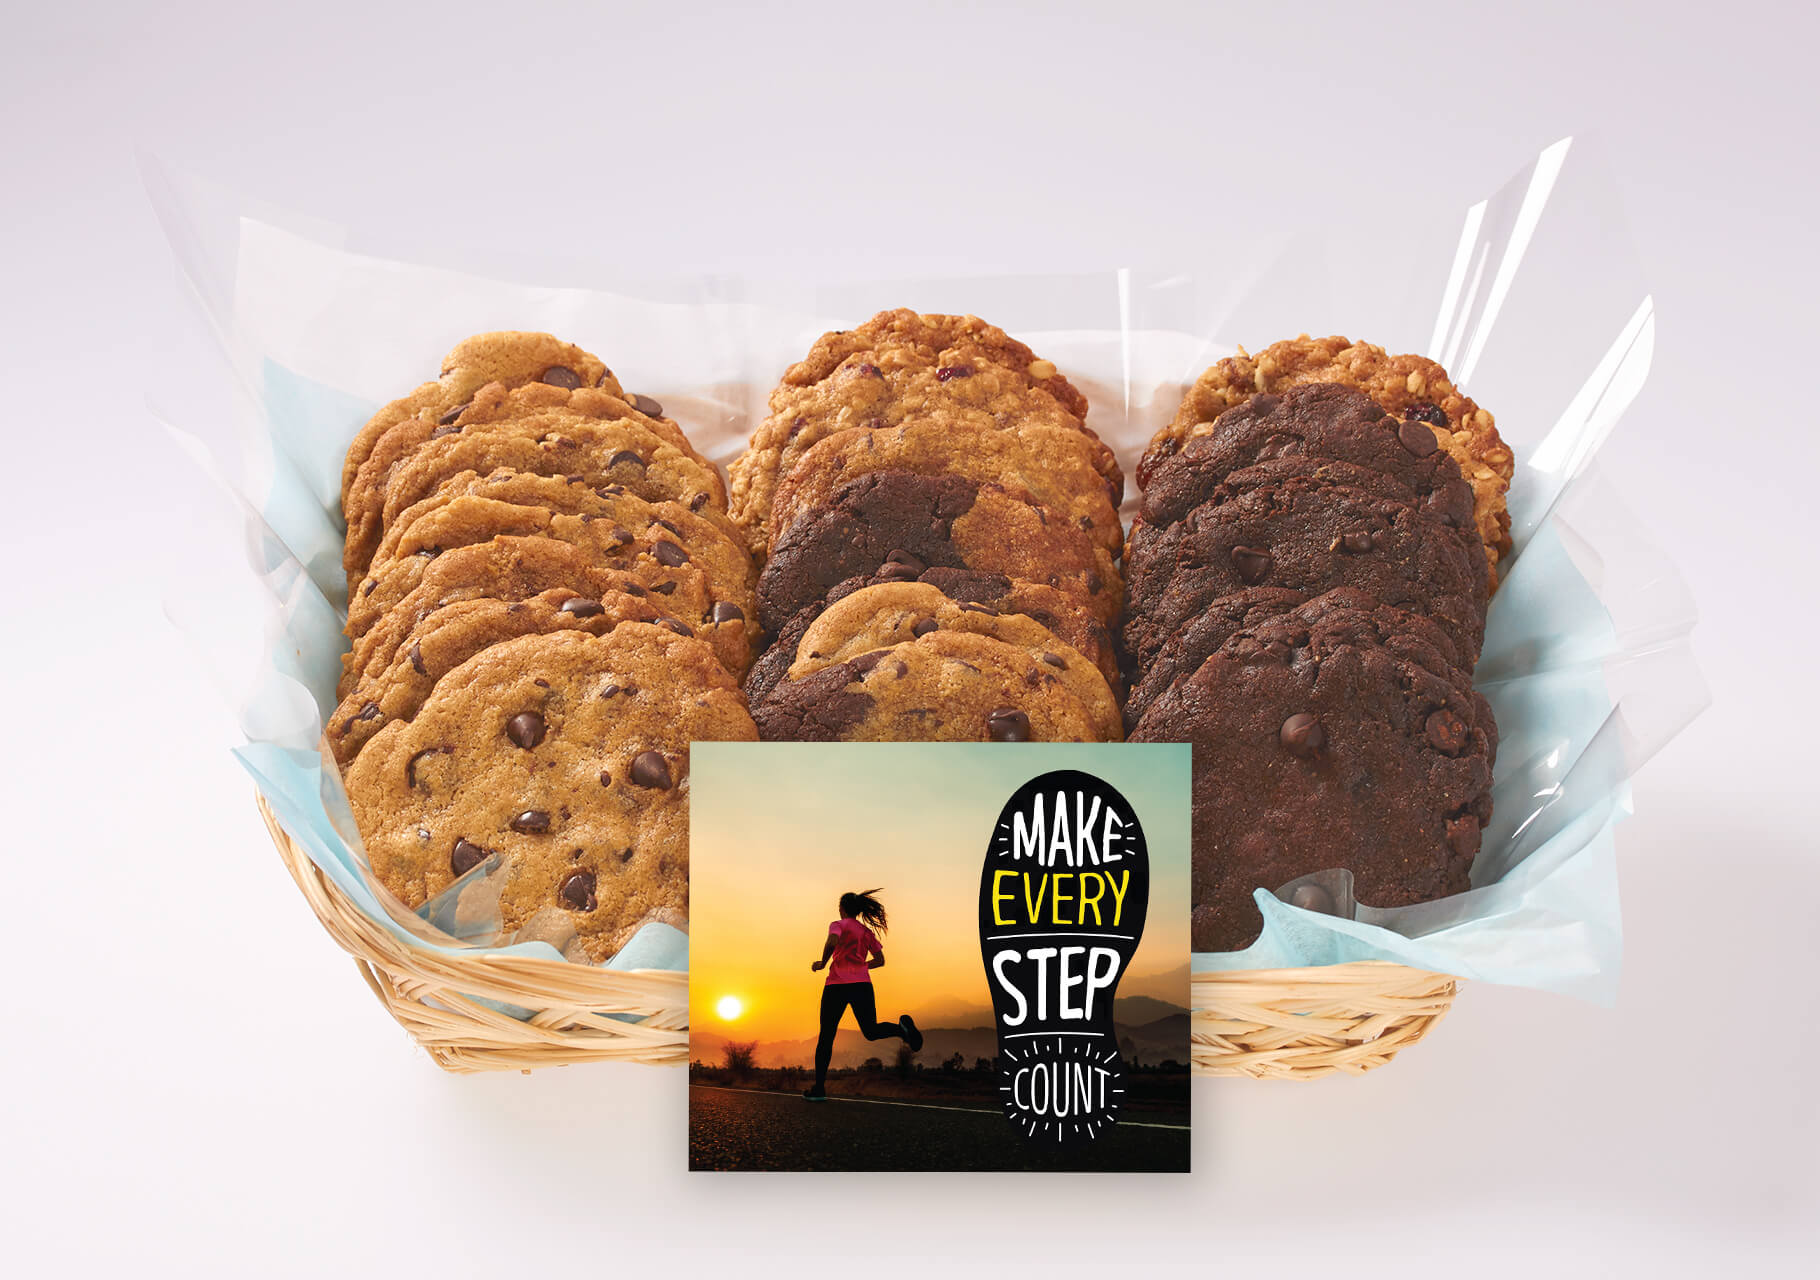 Make Every Step Count Cookie Gift Basket to Inspire